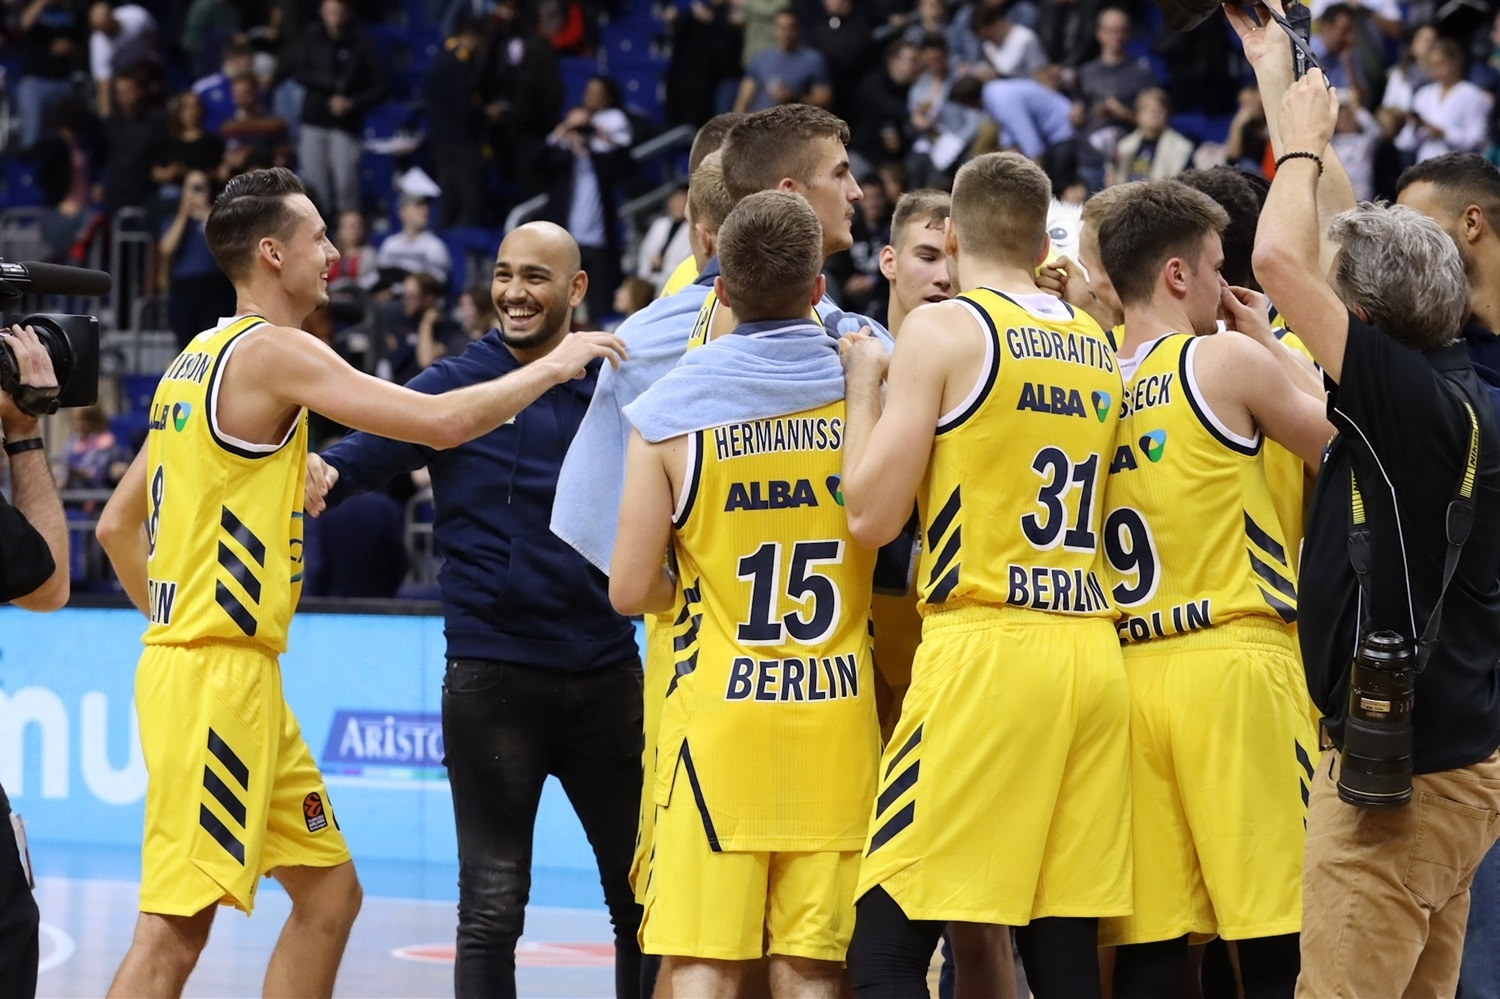 ALBA Berlin celebrates - EB19